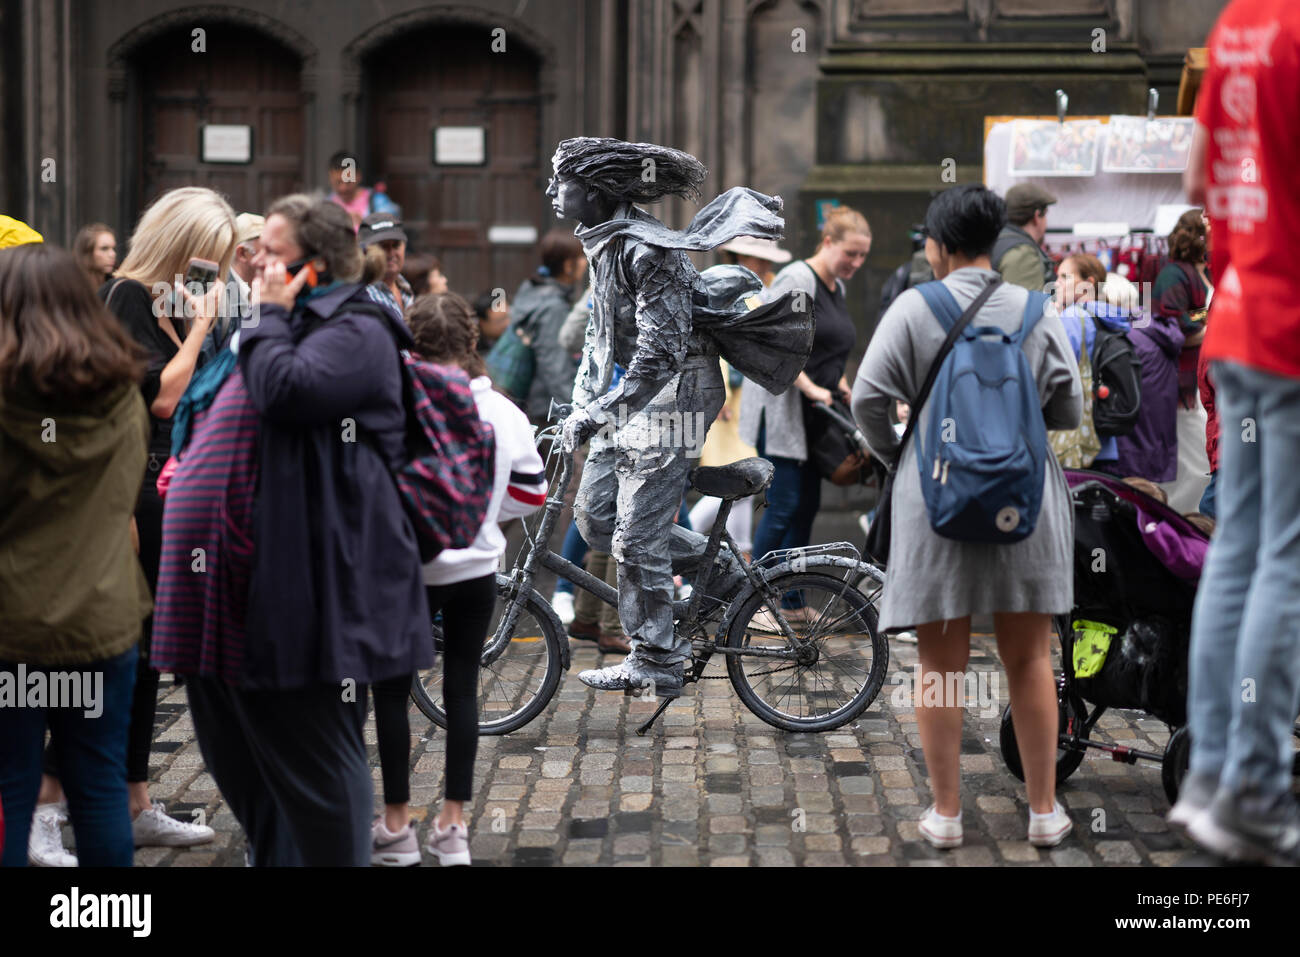 Edinburgh, Scotland UK. 13th August 2018. A motionless busker entertains tourists on the Royal Mile in the Old Town of Edinburgh. Ben Collins/Alamy Live News Stock Photo